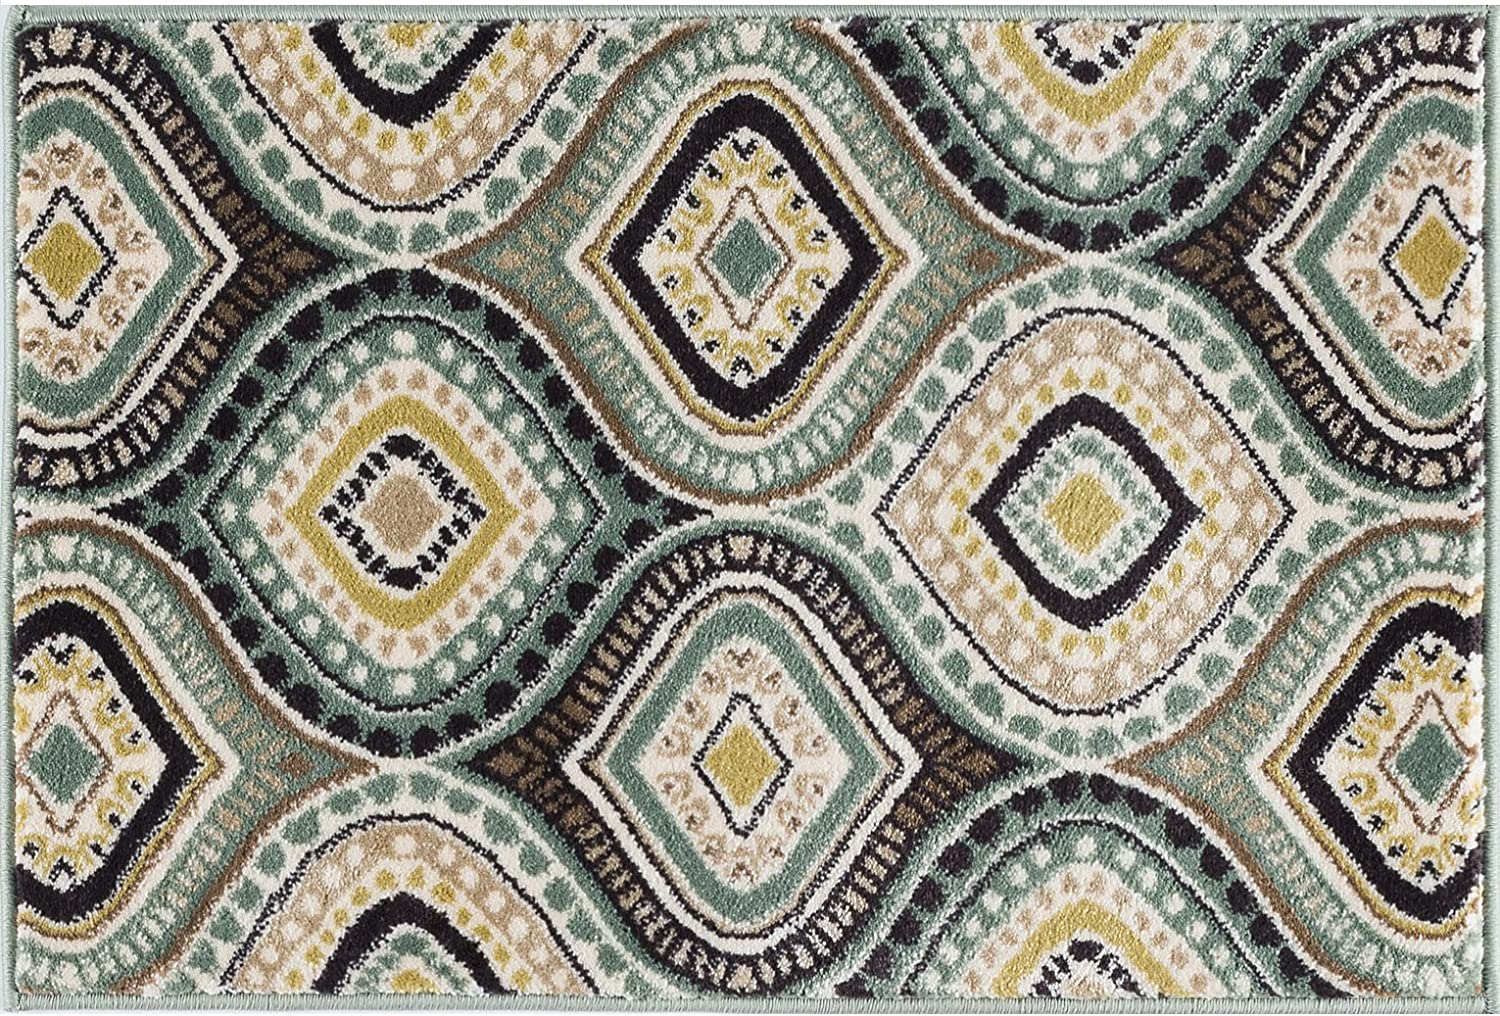 Aurora Contemporary Max 62% OFF Abstract Seafoam Scatter x 3' Rug Super beauty product restock quality top! 2' Mat